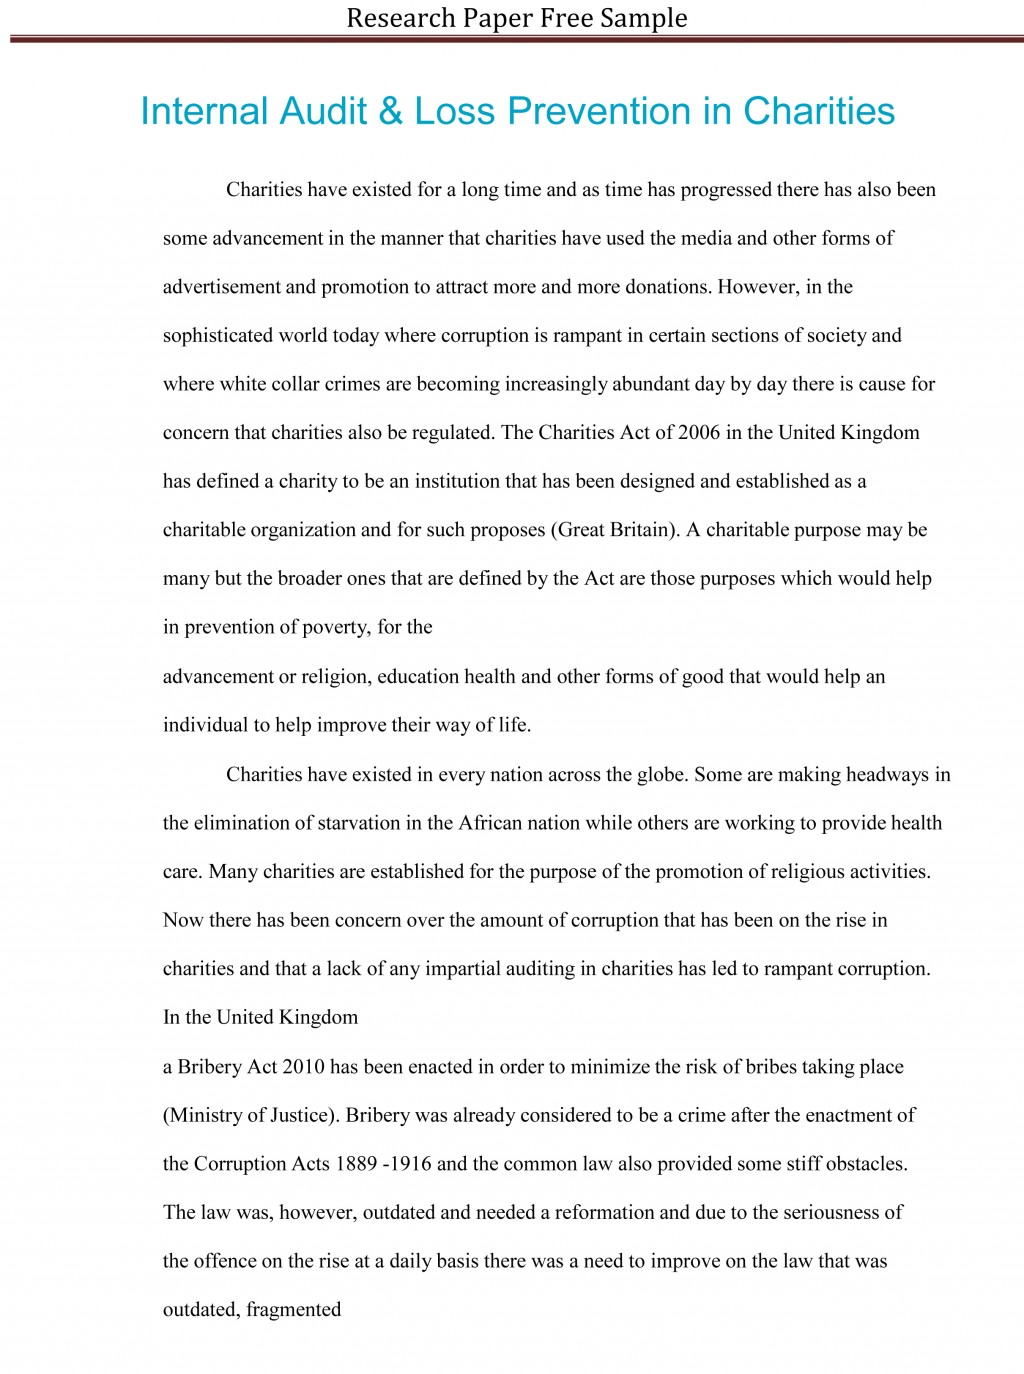 007 Research Paper Sample Essays Top Papers Terrorism Writer Large